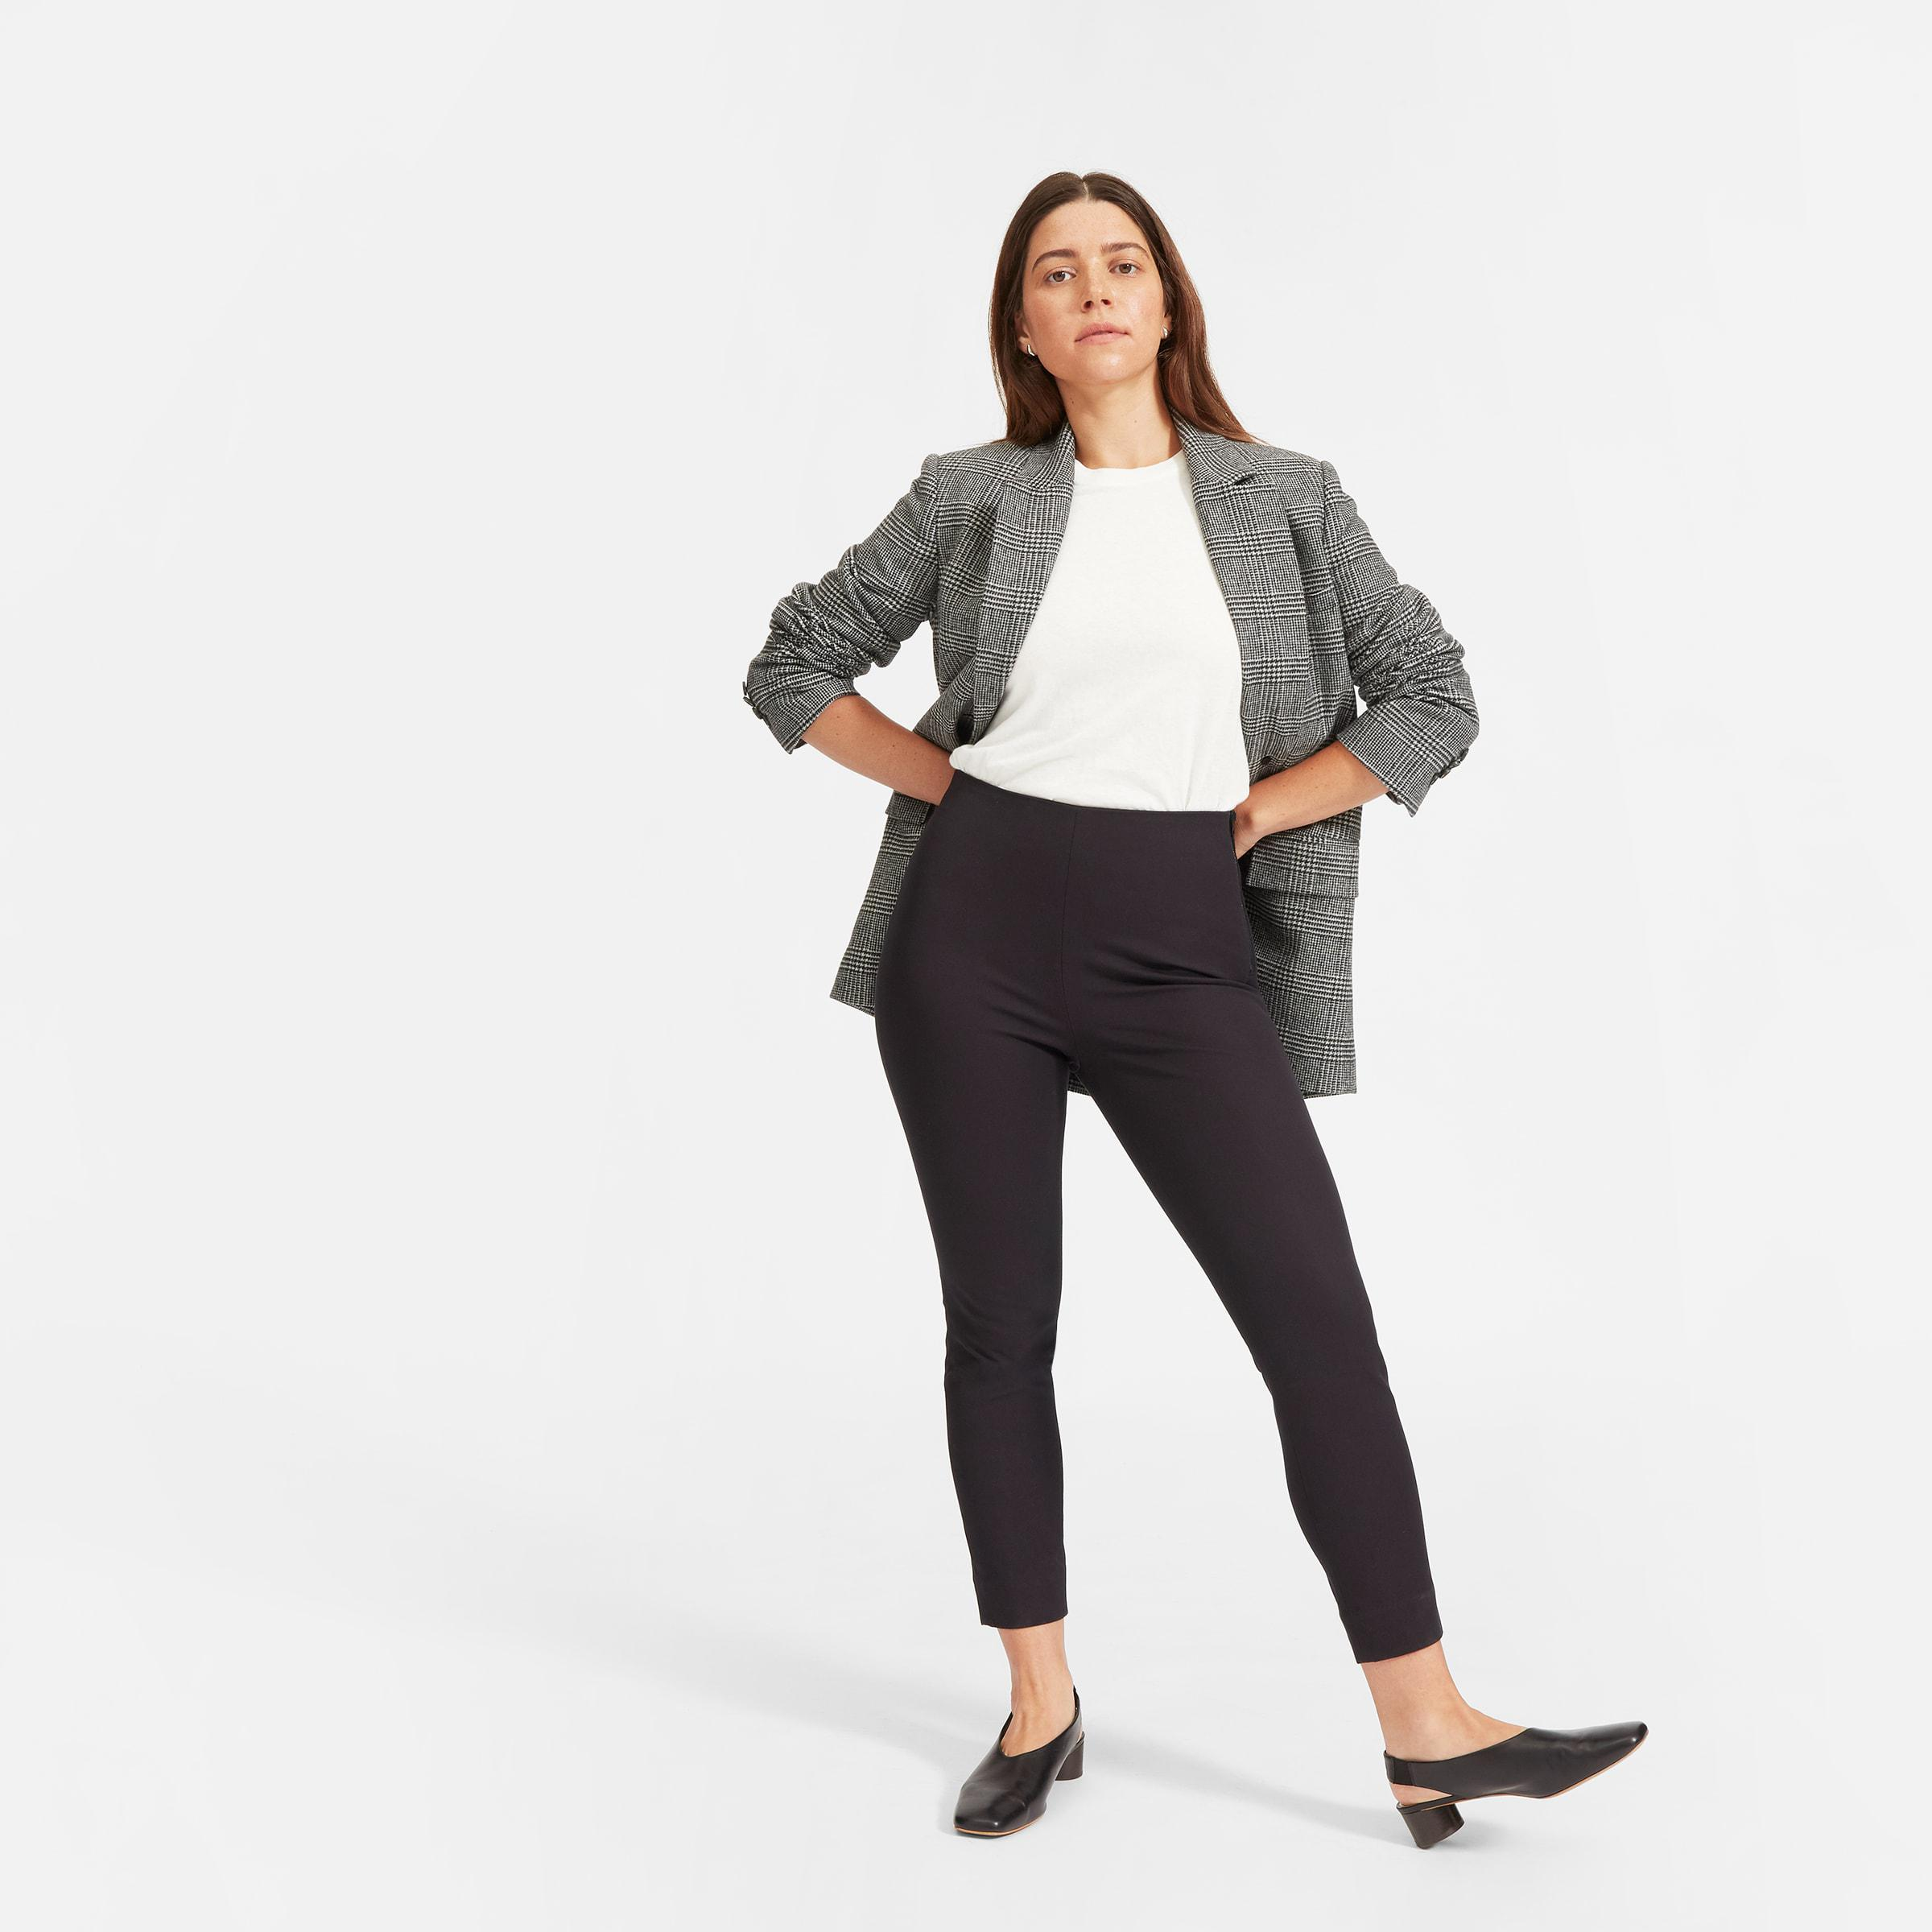 The Curvy Side-Zip Stretch Cotton Pant